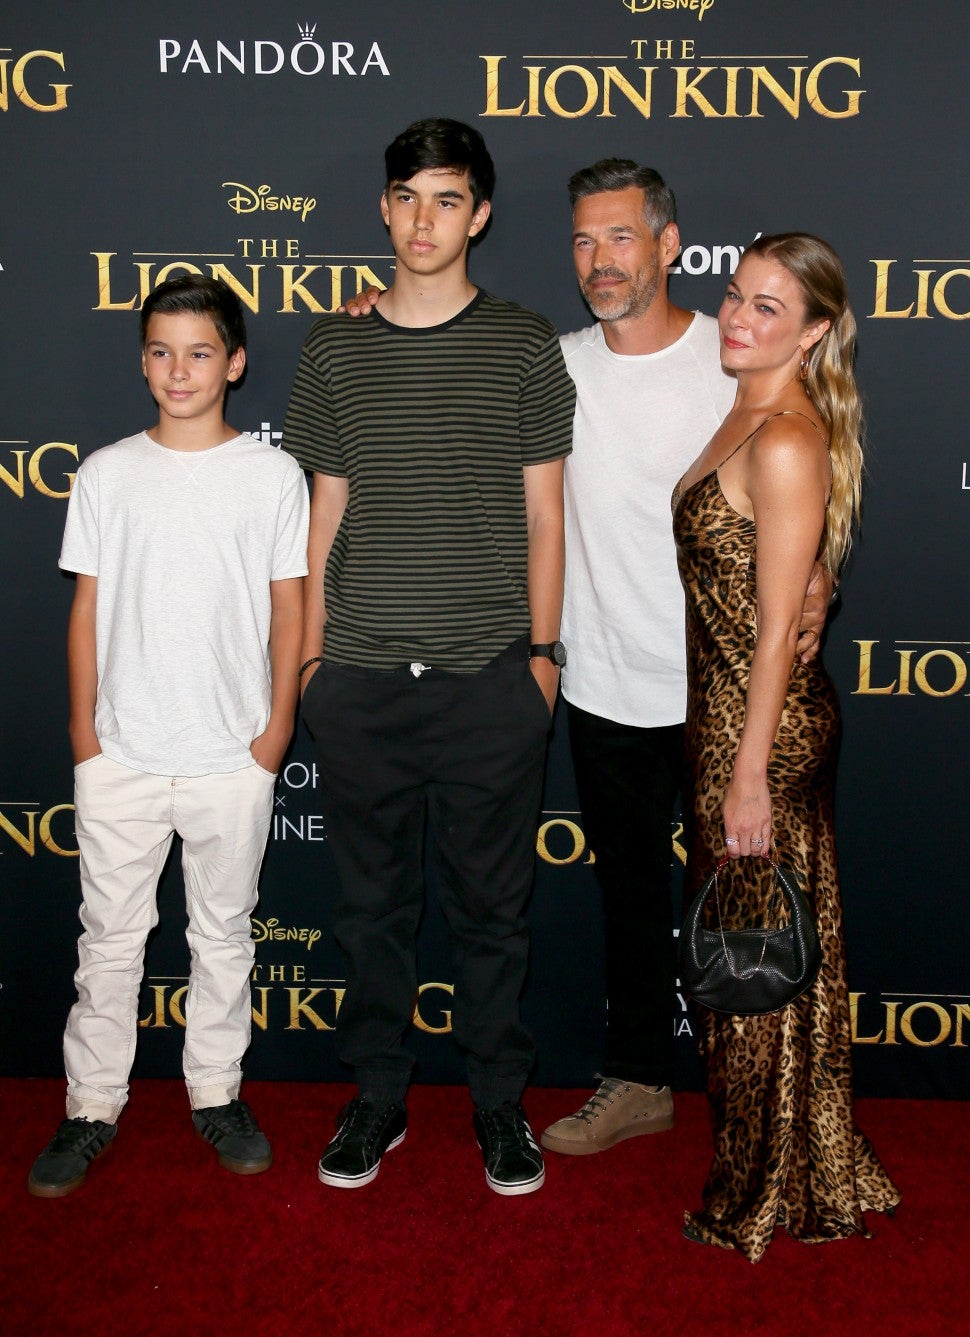 Eddie Cibrian and  Leann Rimes Lion King Premiere